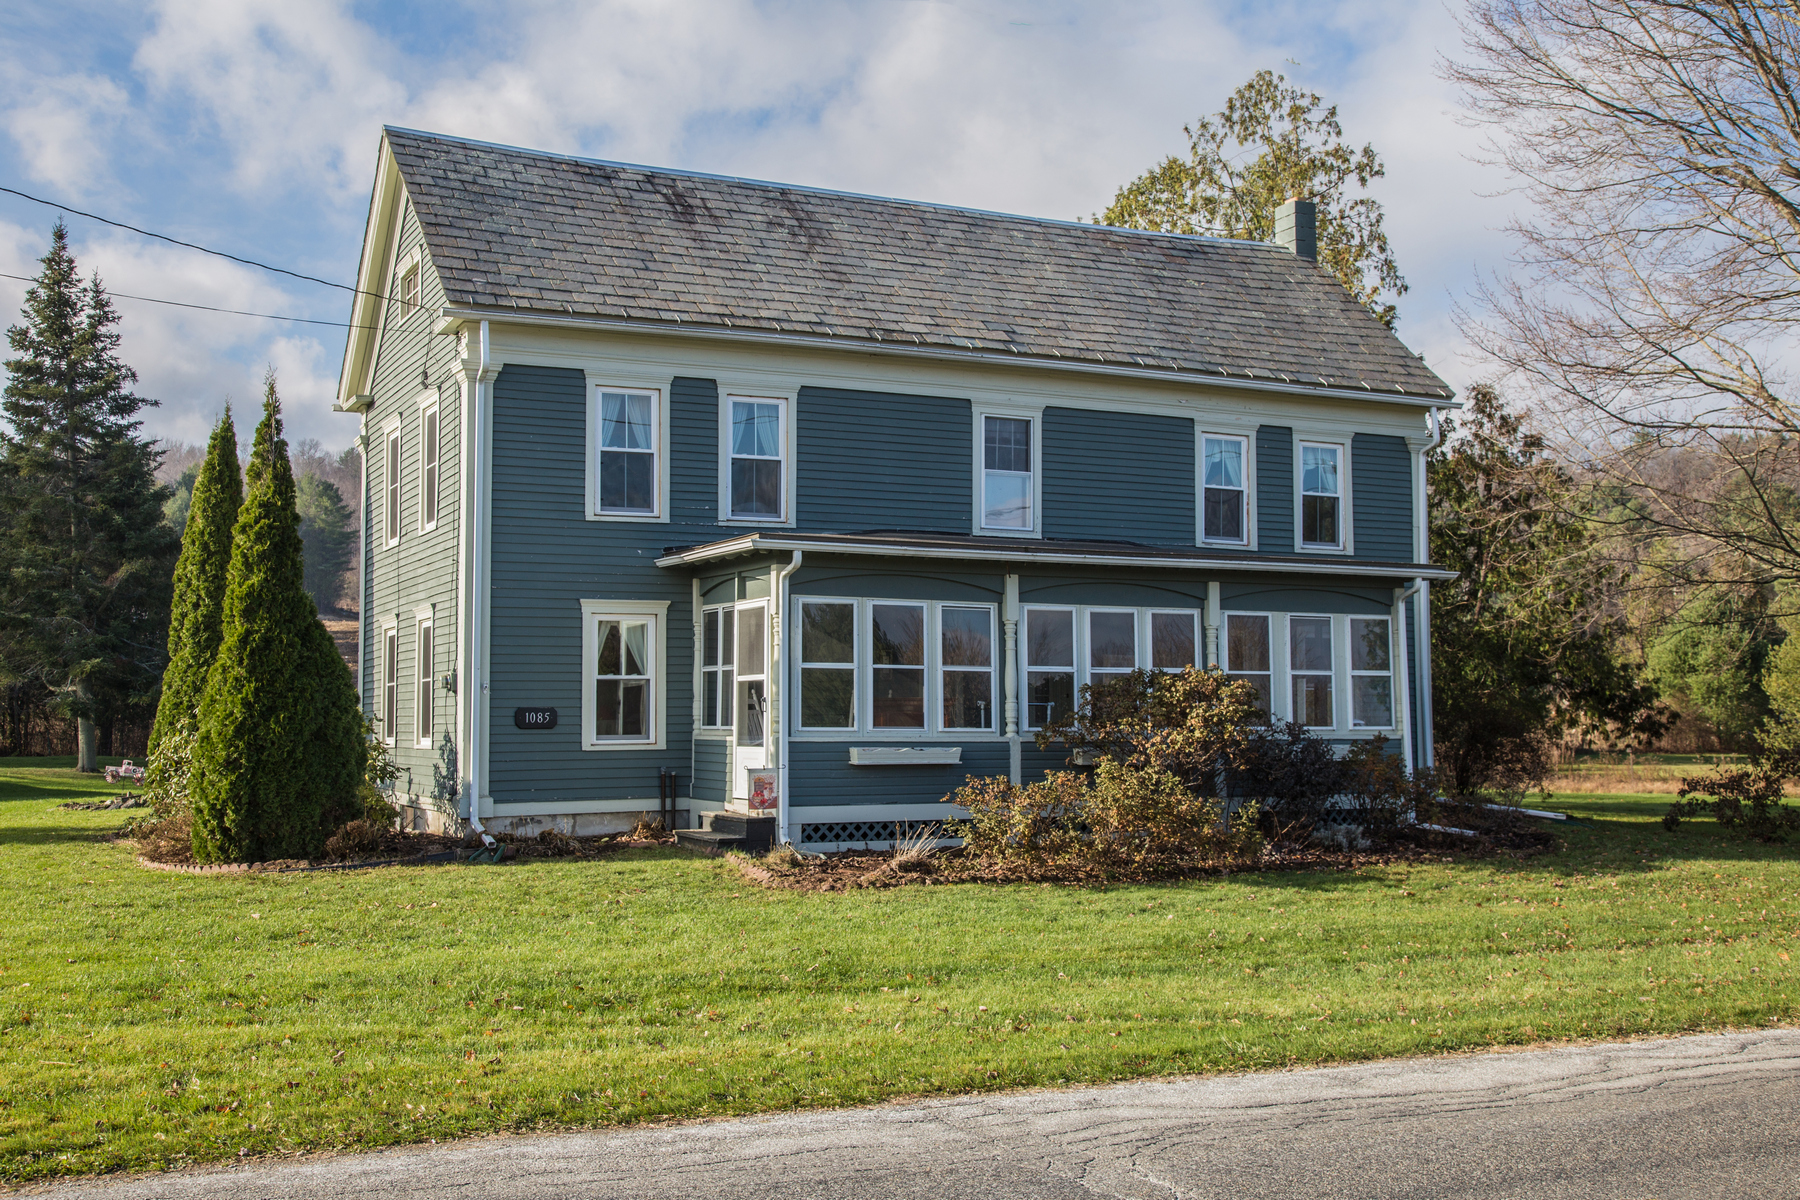 Casa Unifamiliar por un Venta en Feels Like Home 1085 West Crk, Pittsford, Vermont, 05744 Estados Unidos